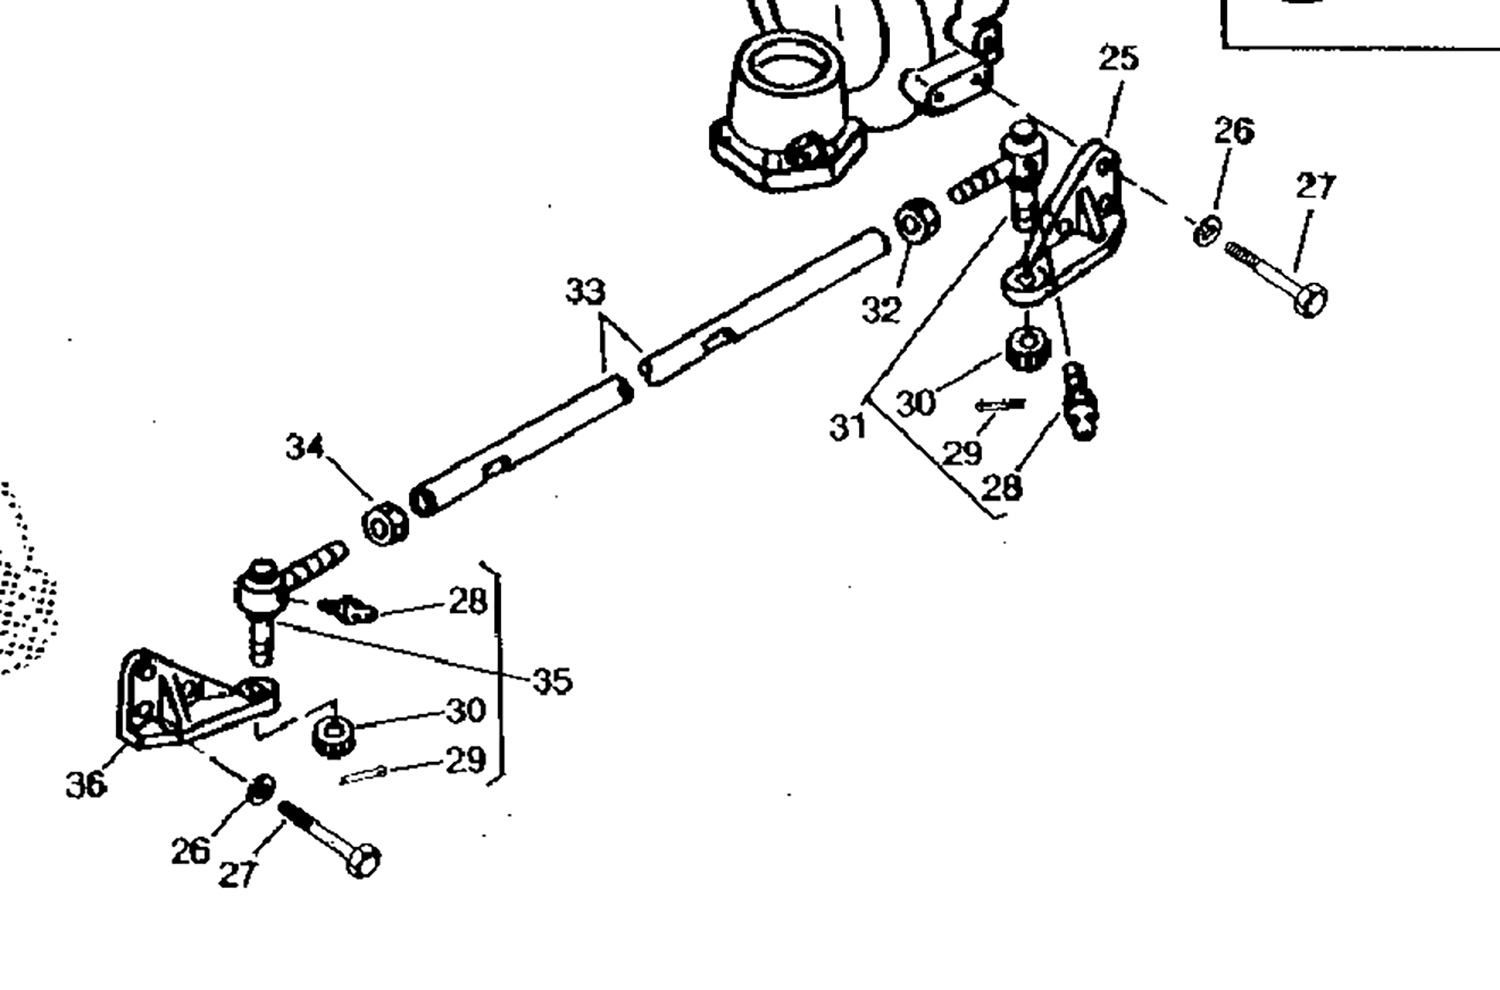 John Deere 790 Parts Diagram